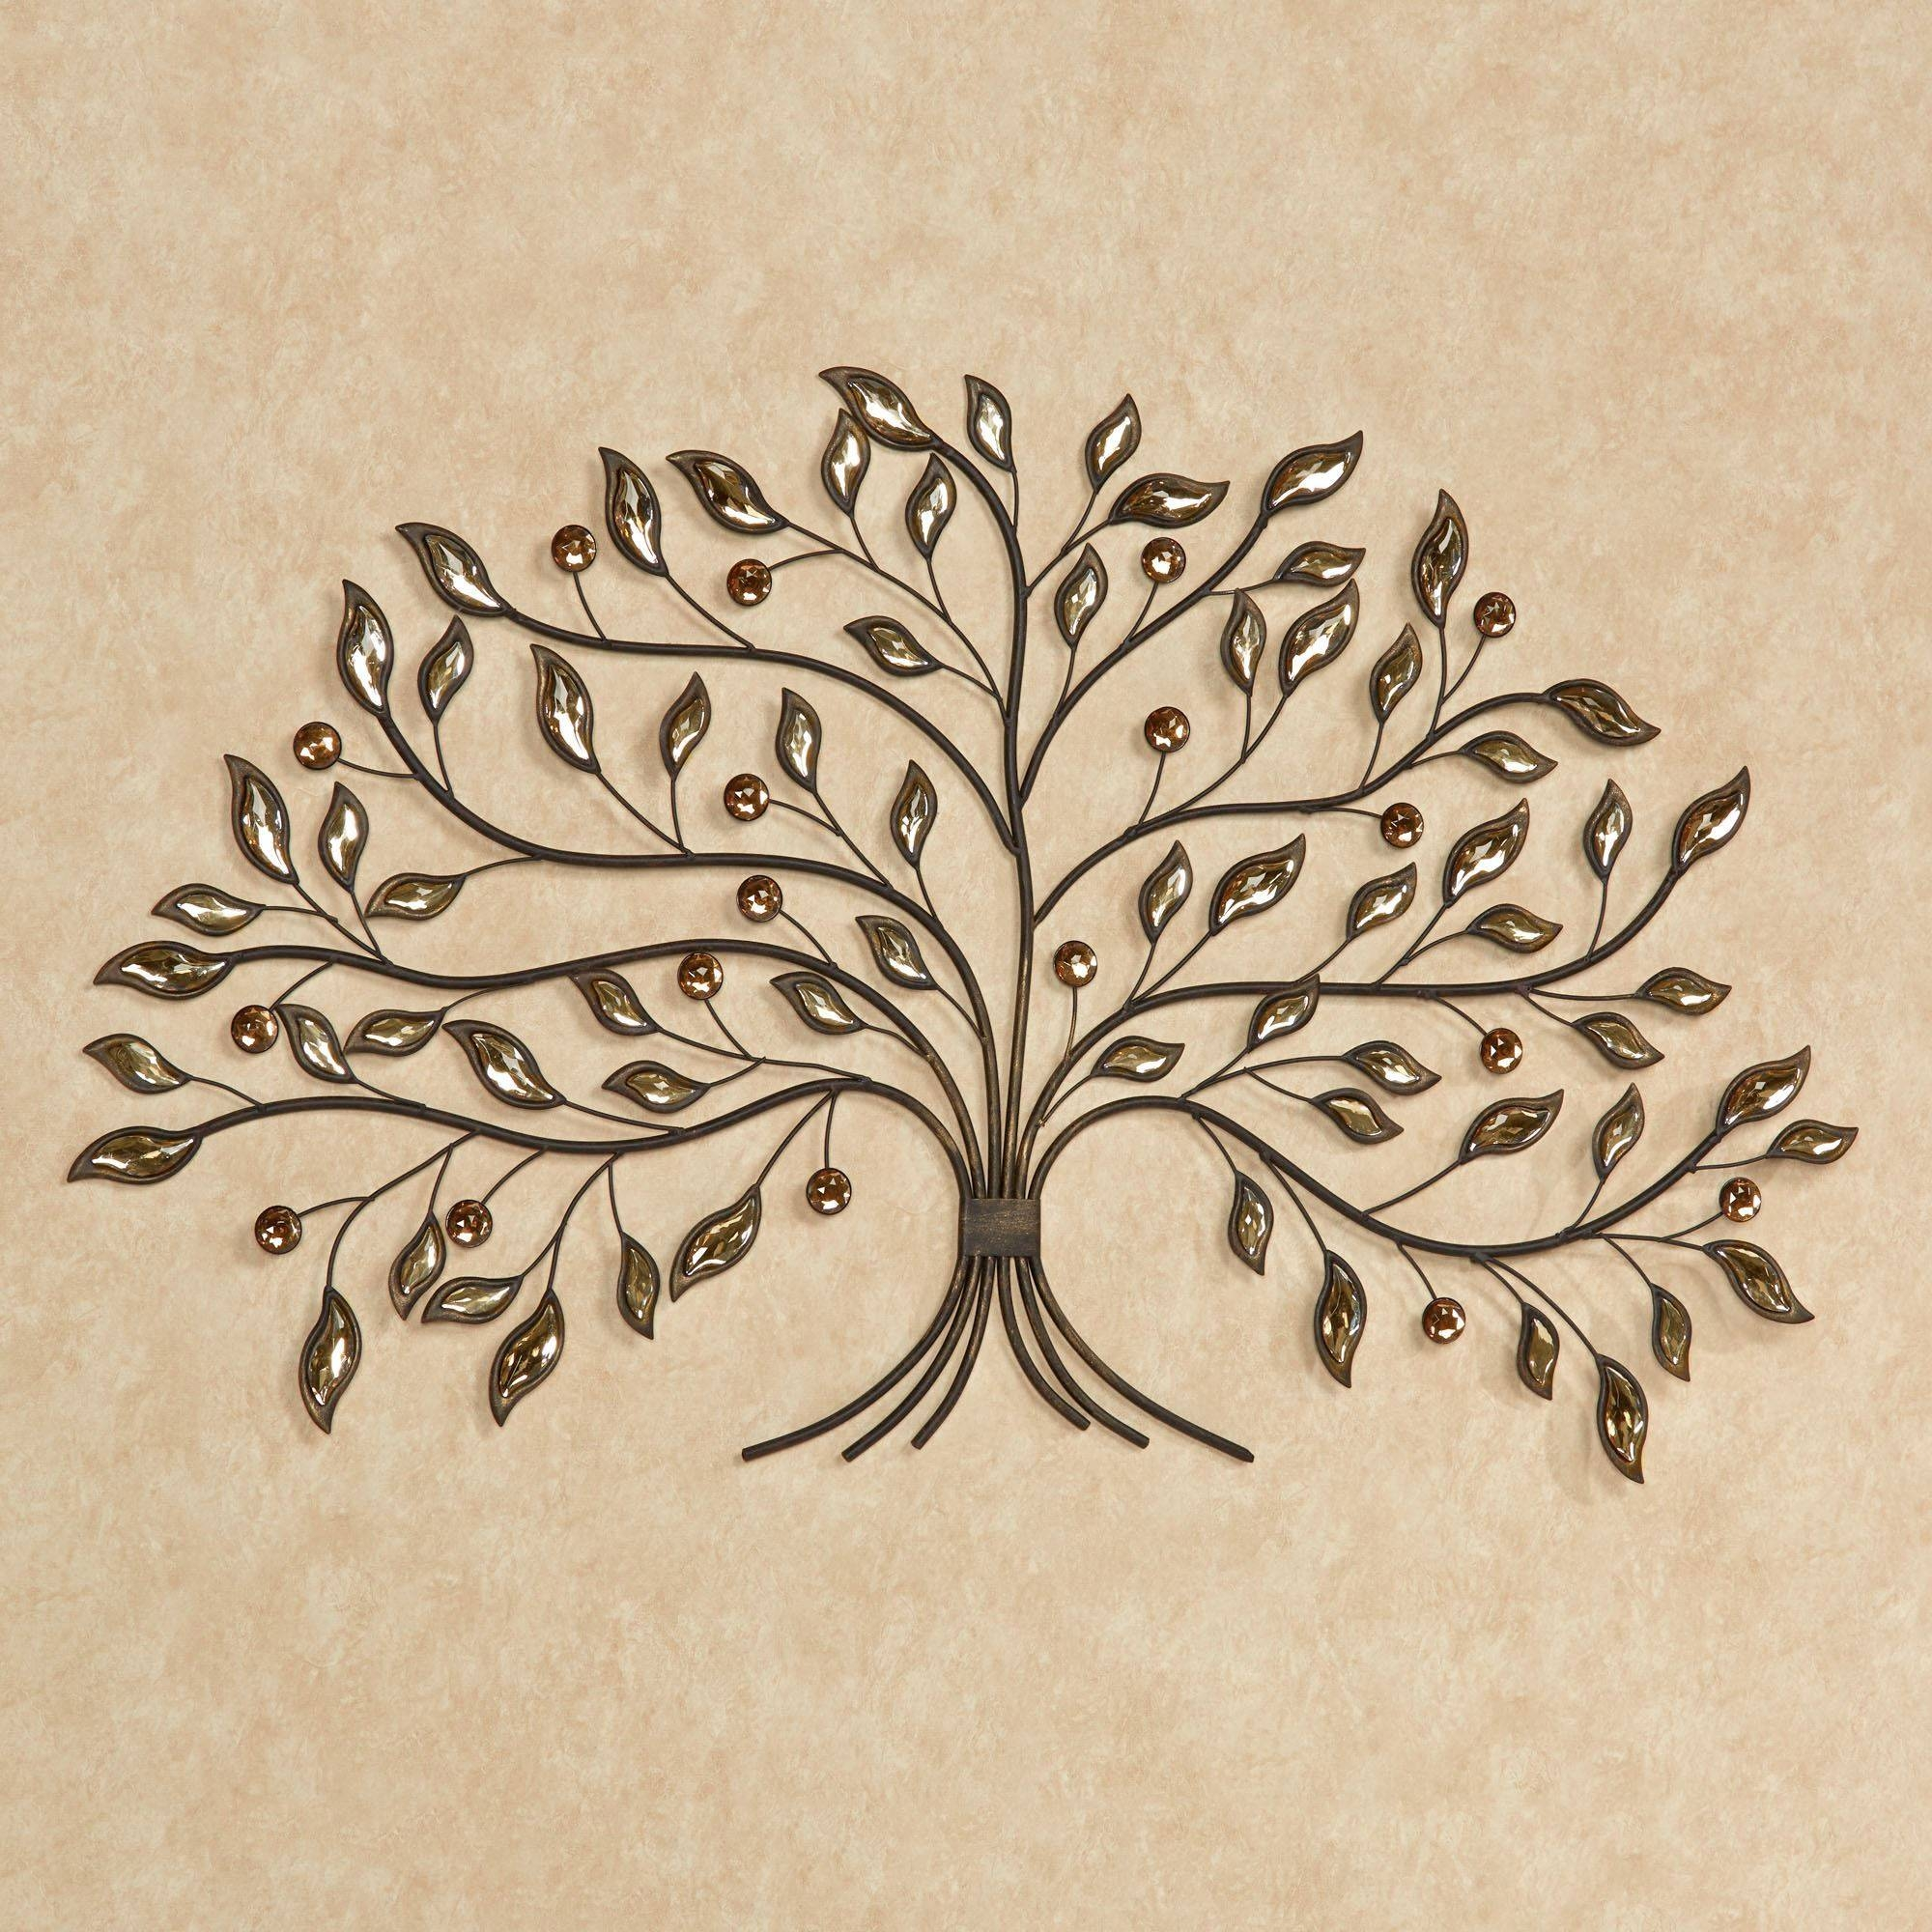 Alexandra Vining Gem Tree Metal Wall Art Within Most Recently Released Metal Wall Art Trees And Leaves (View 1 of 20)